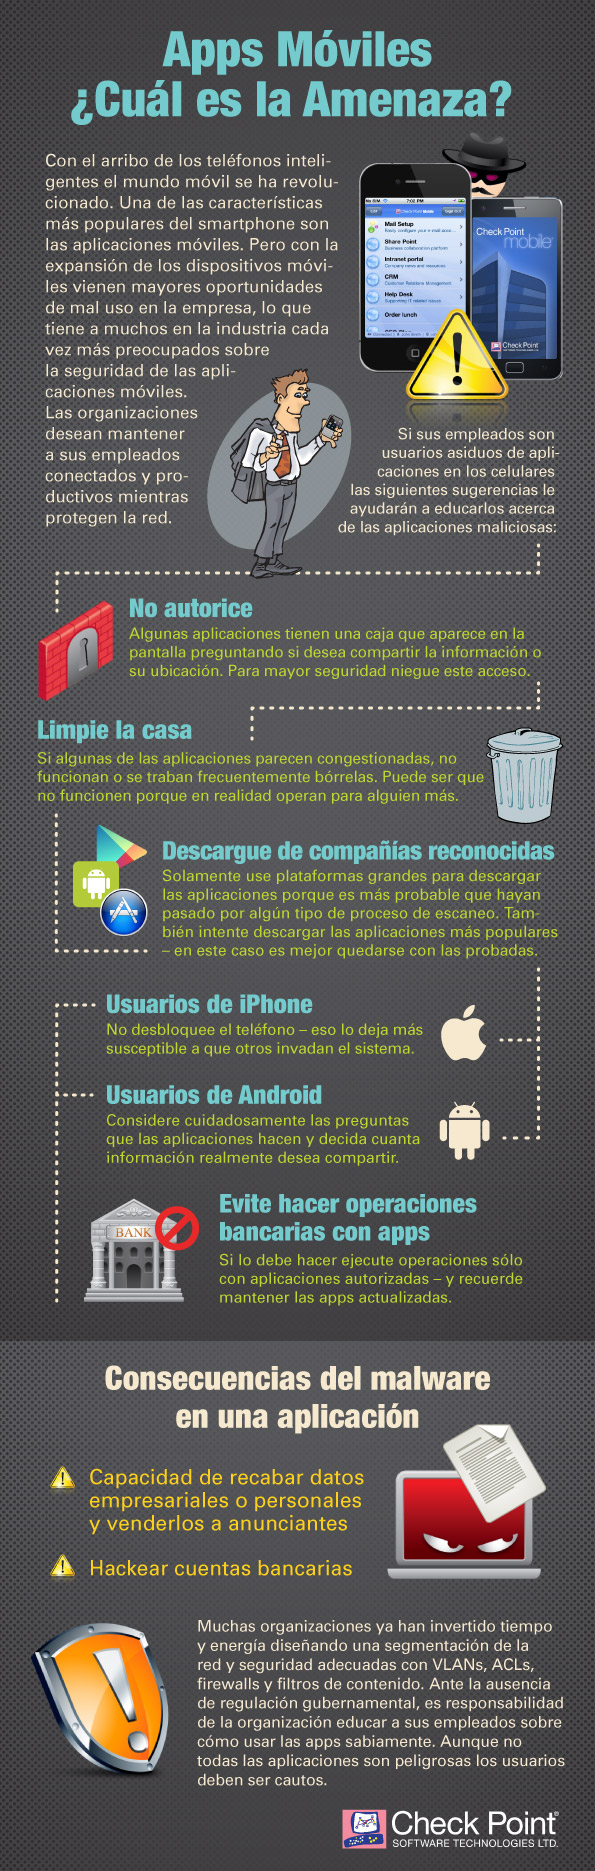 consejos malware apps moviles